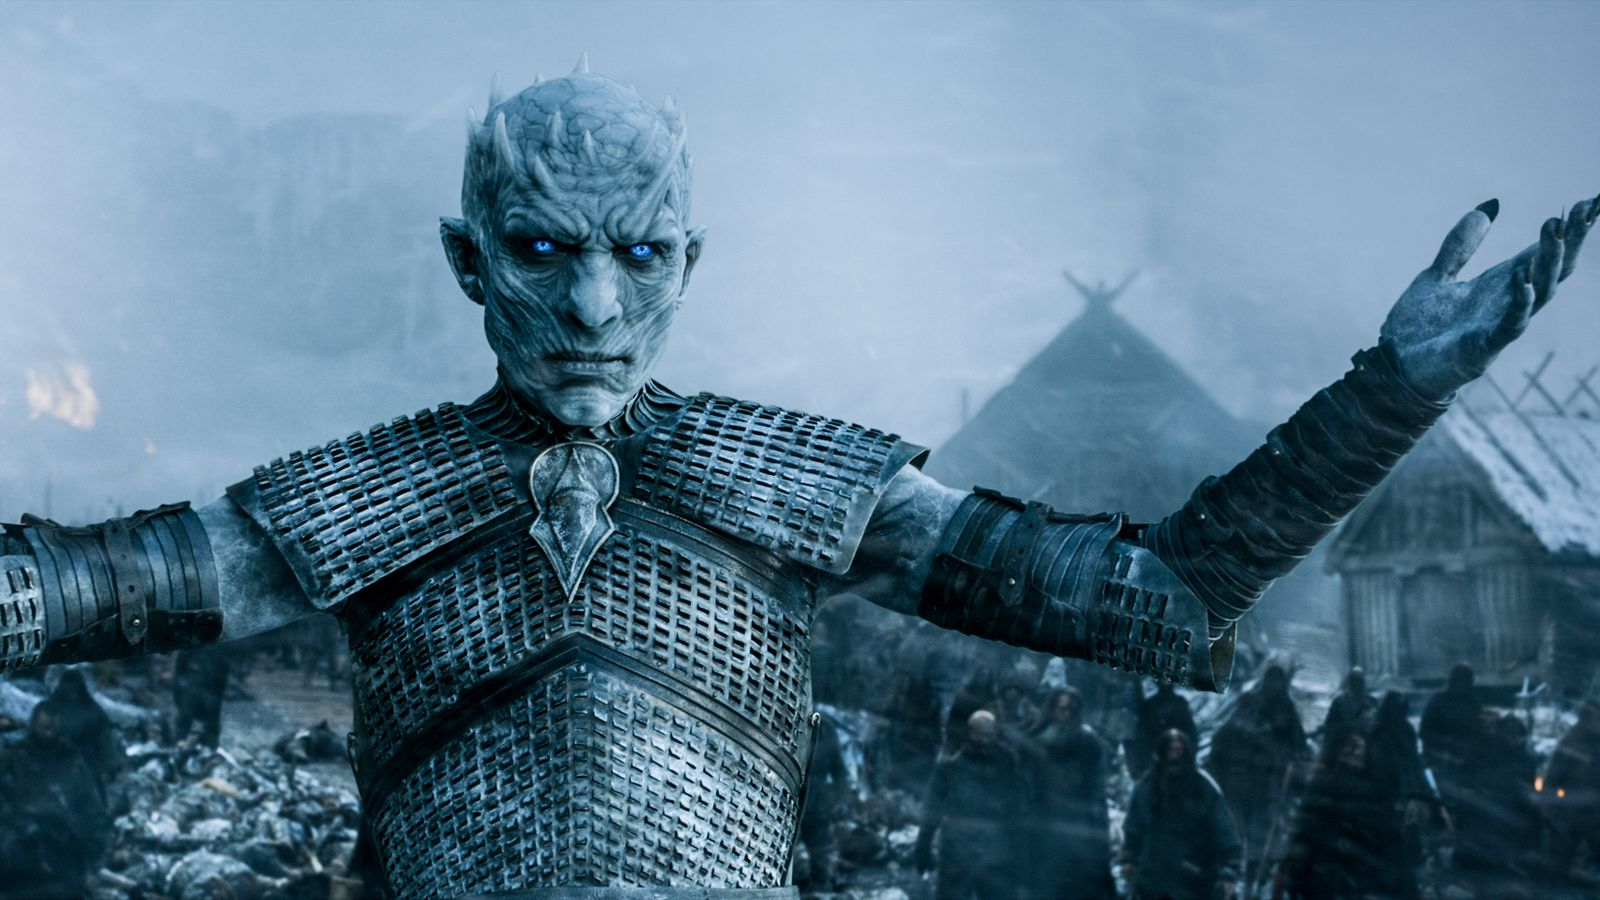 Hackers are using the promise of Game of Thrones spoilers to spread malware